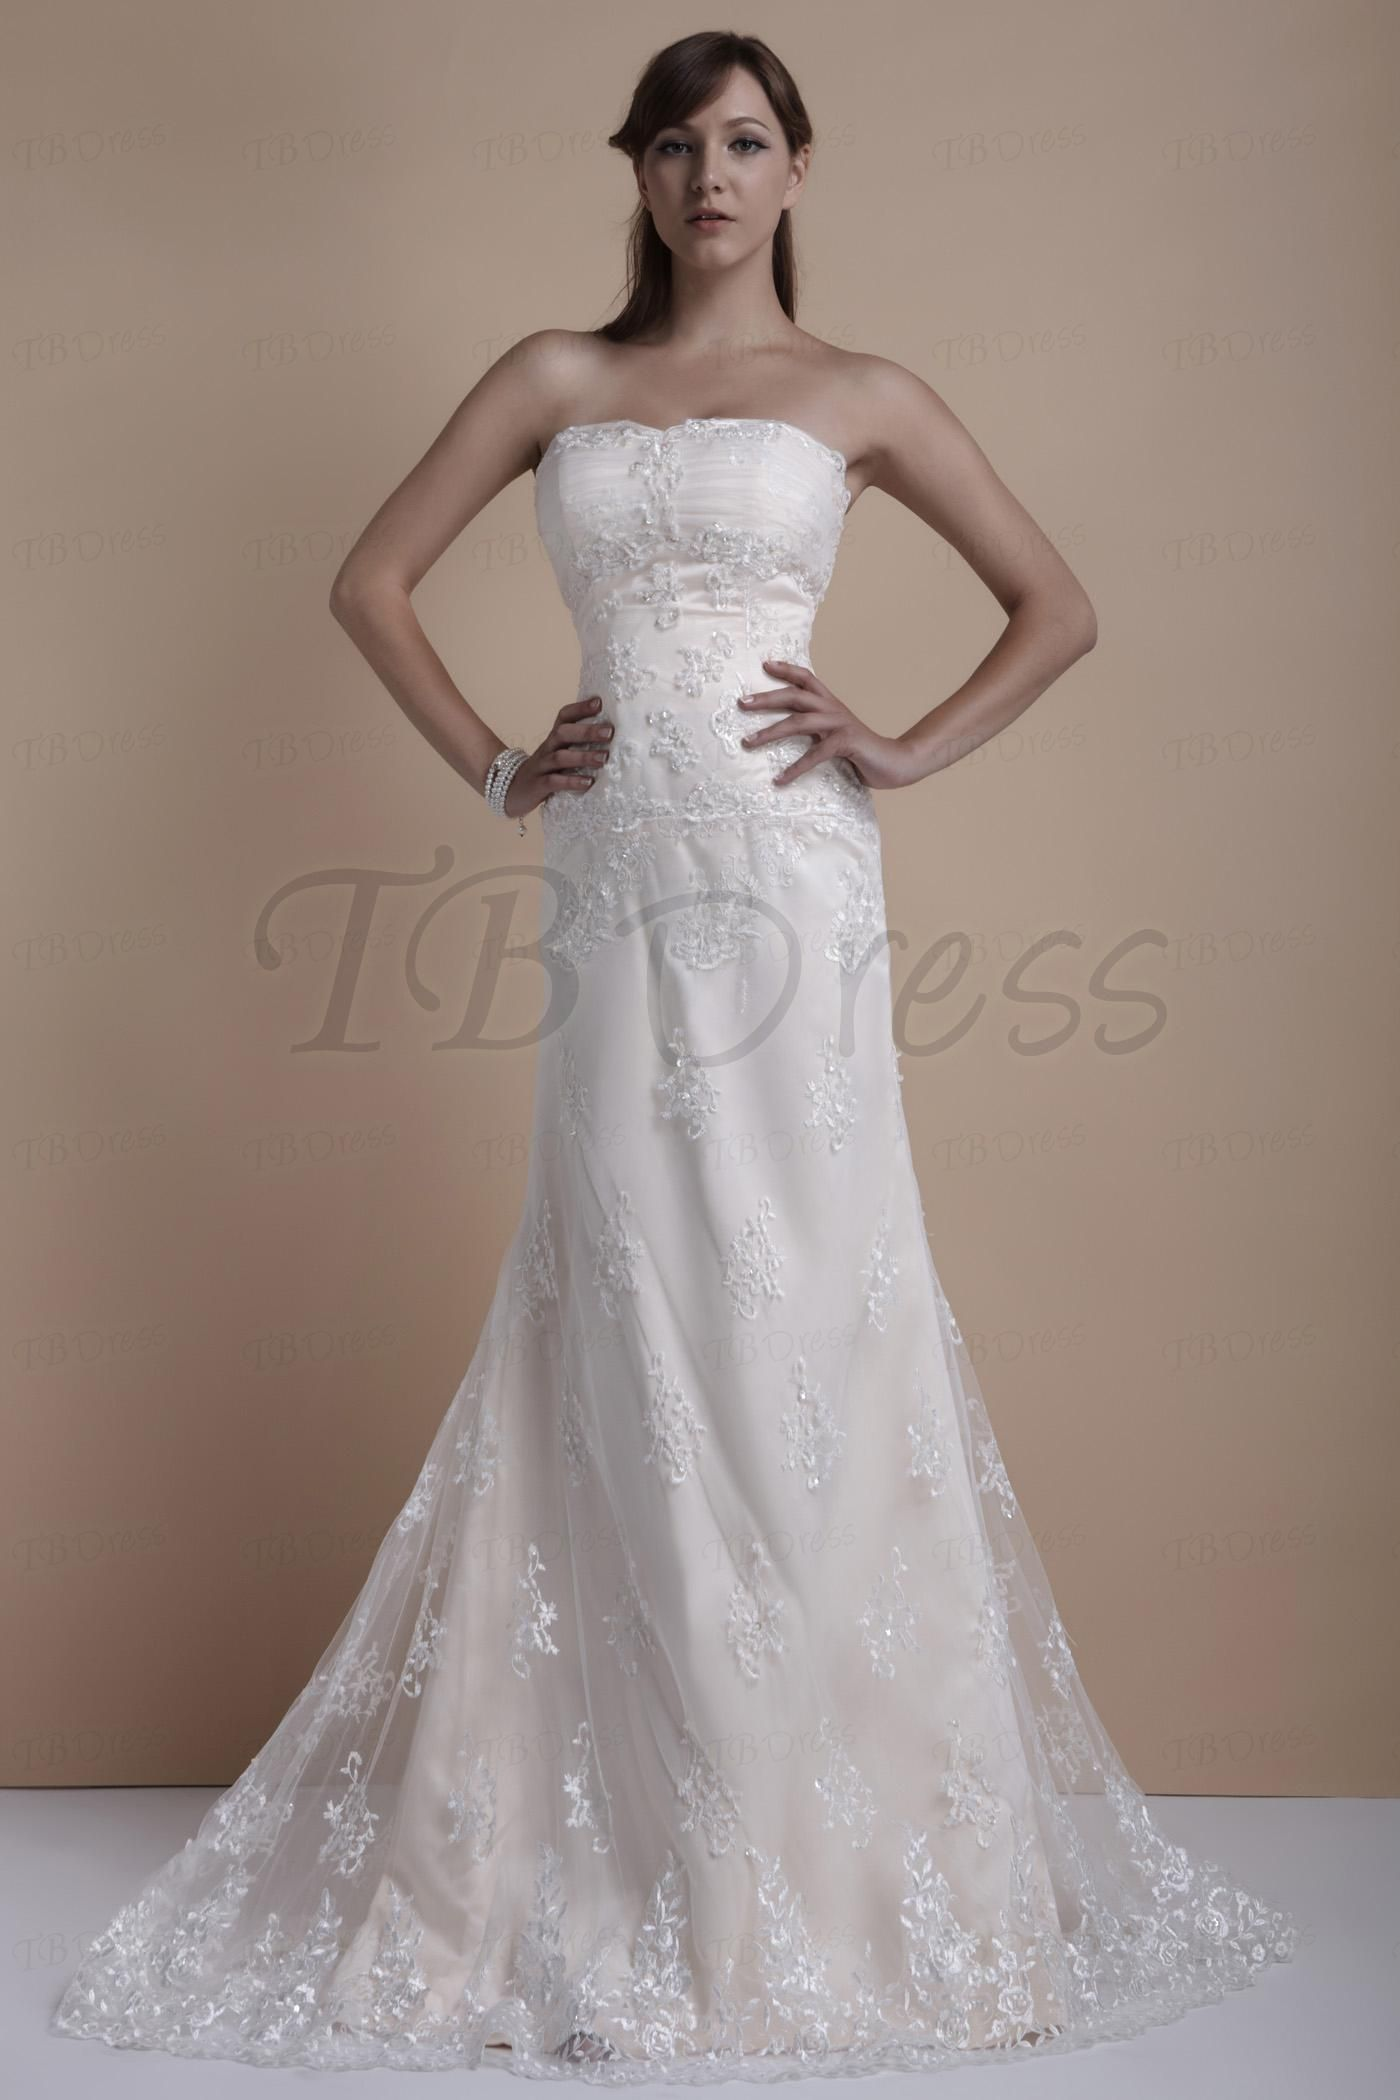 Luxury sheathcolumn strapless court train over lace elaus wedding